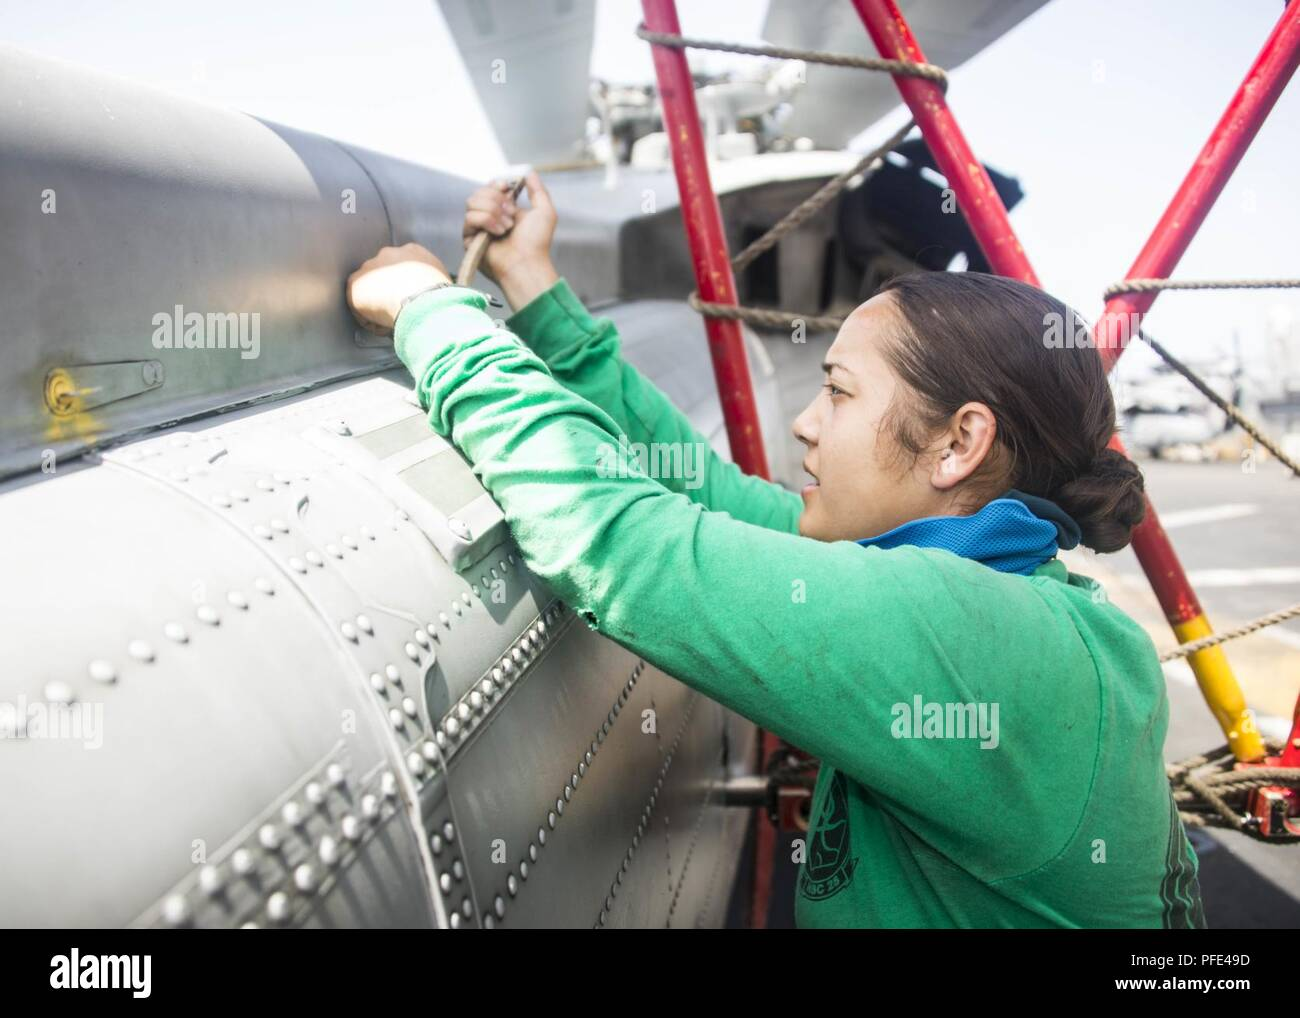 5th FLEET AREA OF OPERATIONS (June 9, 2018) Aviation Structural Mechanic 3rd Class Mileika Miki, assigned to Helicopter Sea Combat Squadron (HSC) 28, performs maintenance on an MH-60S Sea Hawk, in the hangar bay aboard the Wasp-class amphibious assault ship USS Iwo Jima (LHD 7), June 9, 2018. Iwo Jima, homeported in Mayport, Fla., is on deployment to the U.S. 5th Fleet area of operations in support of maritime security operations to reassure allies and partners, and preserve the freedom of navigation and the free flow of commerce in the region. Stock Photo